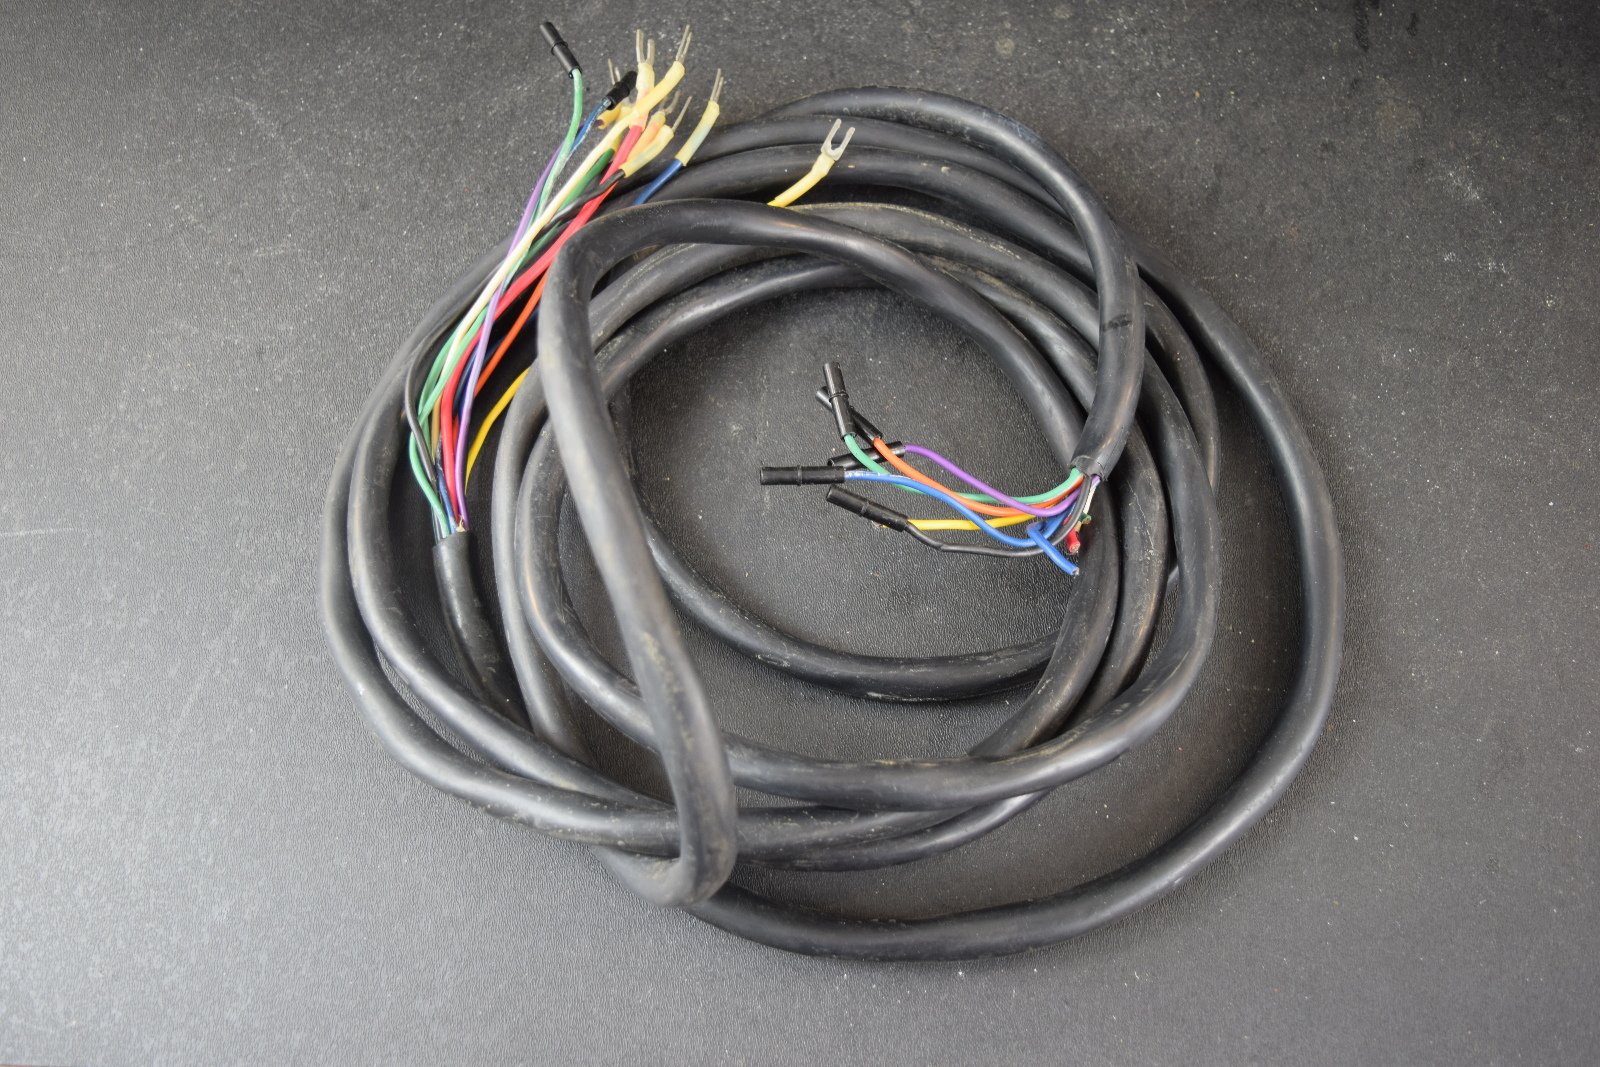 28106 mwh chrysler exterior control wiring harness 152 chrysler wiring harness chrysler tail lights, chrysler 2016 Chrysler 200 at virtualis.co